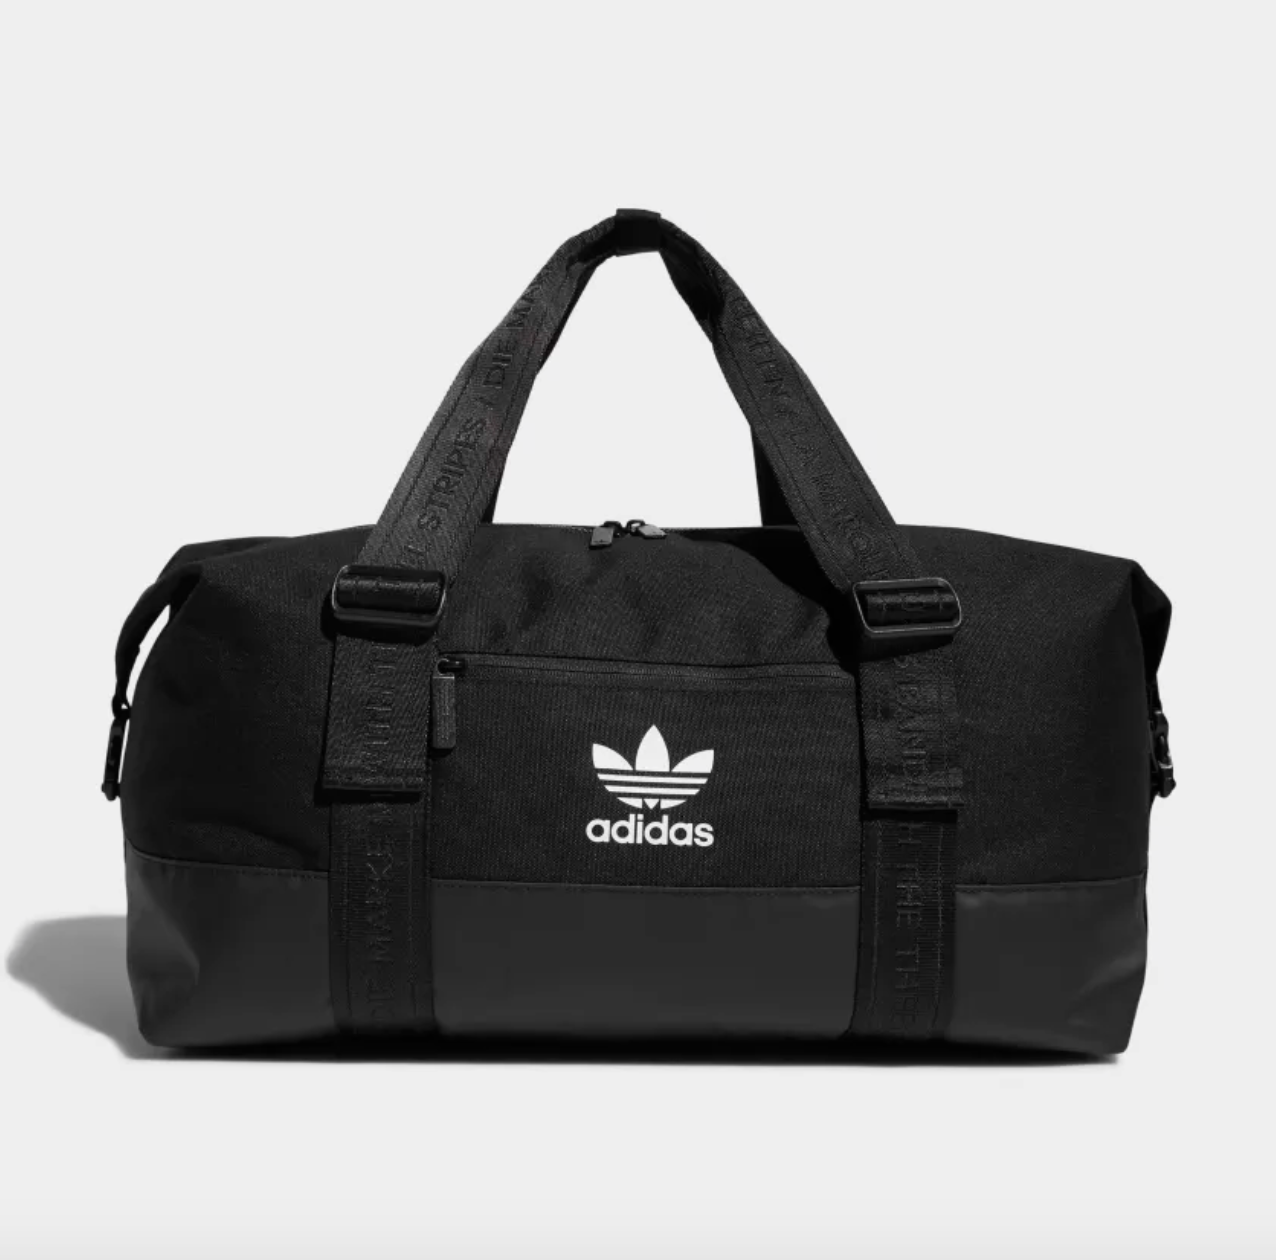 8a97e30d76 9 Best Gym Bags For Men 2018 — Top Backpacks And Duffle Bags